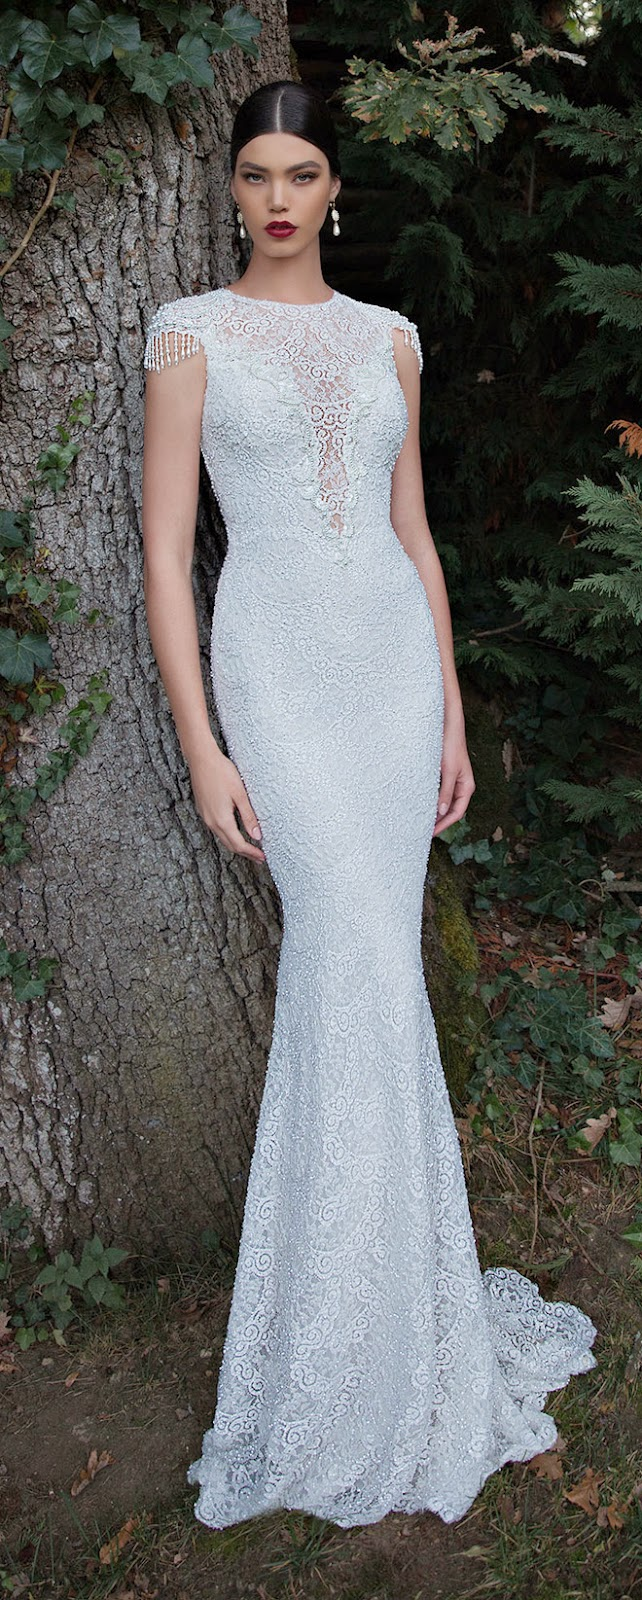 Elite wedding dresses  millicent pobee millicentpobee on Pinterest